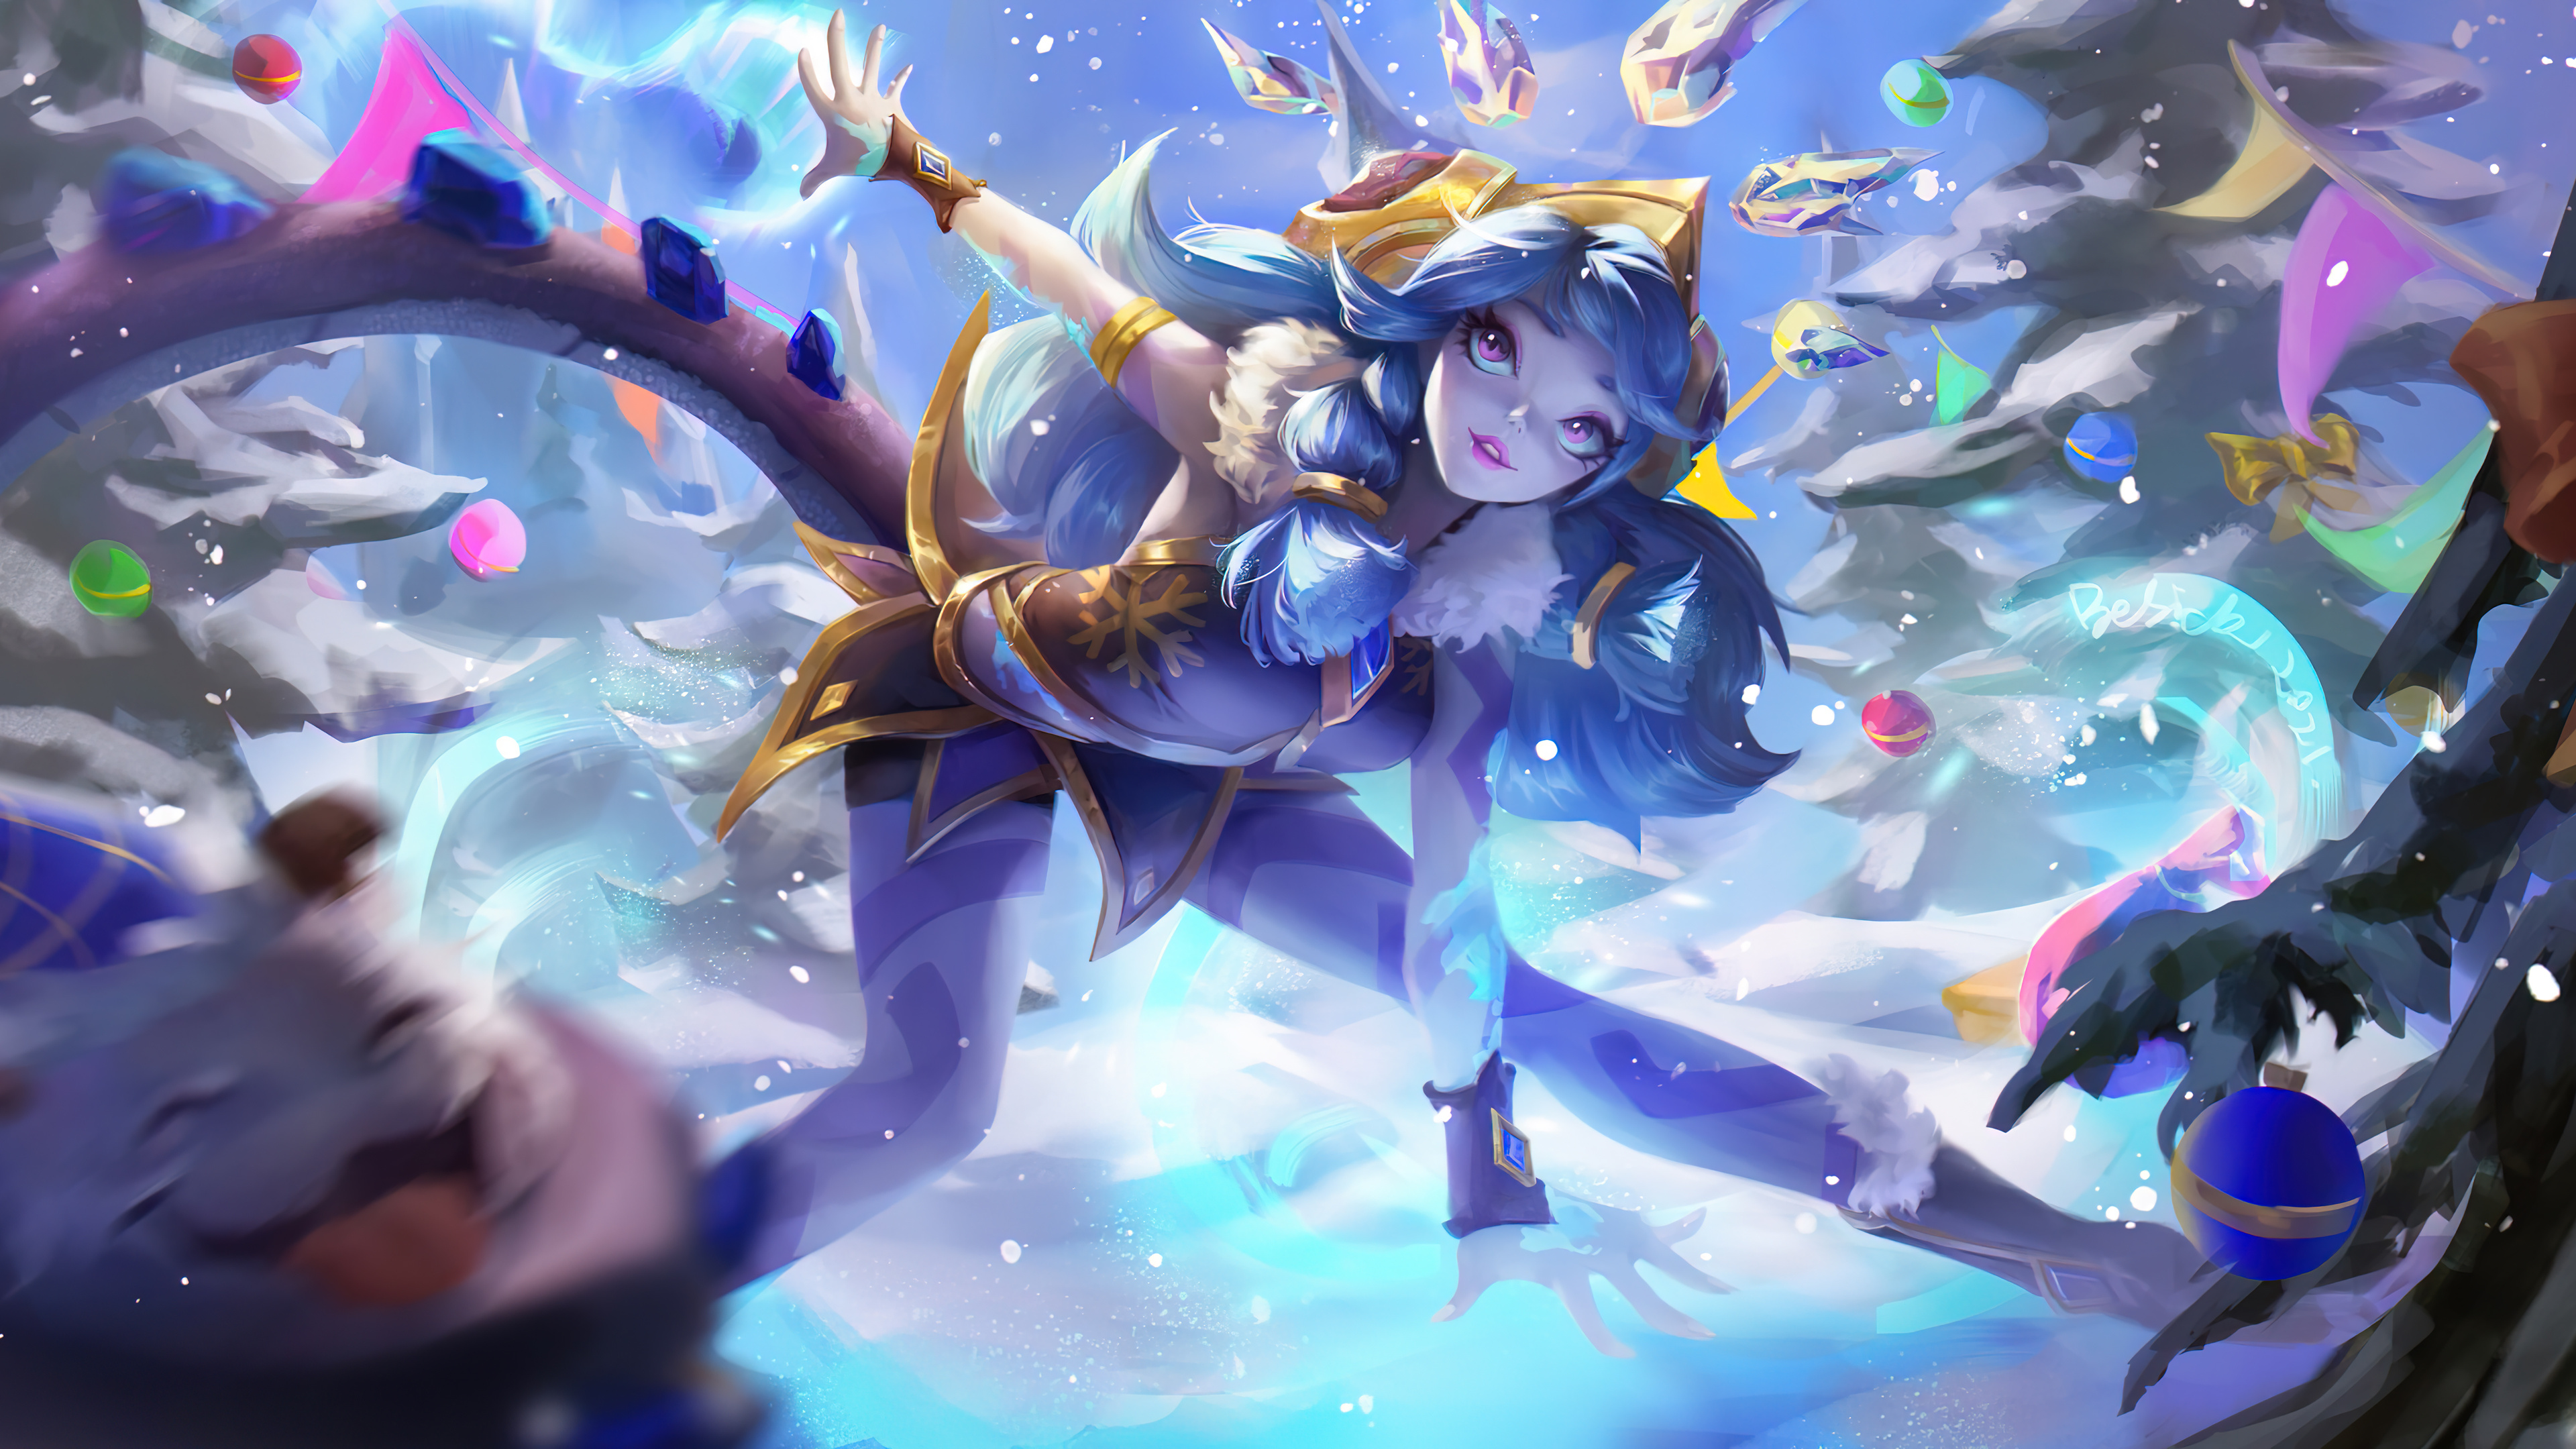 Fondos de pantalla Neeko de League of Legends Art